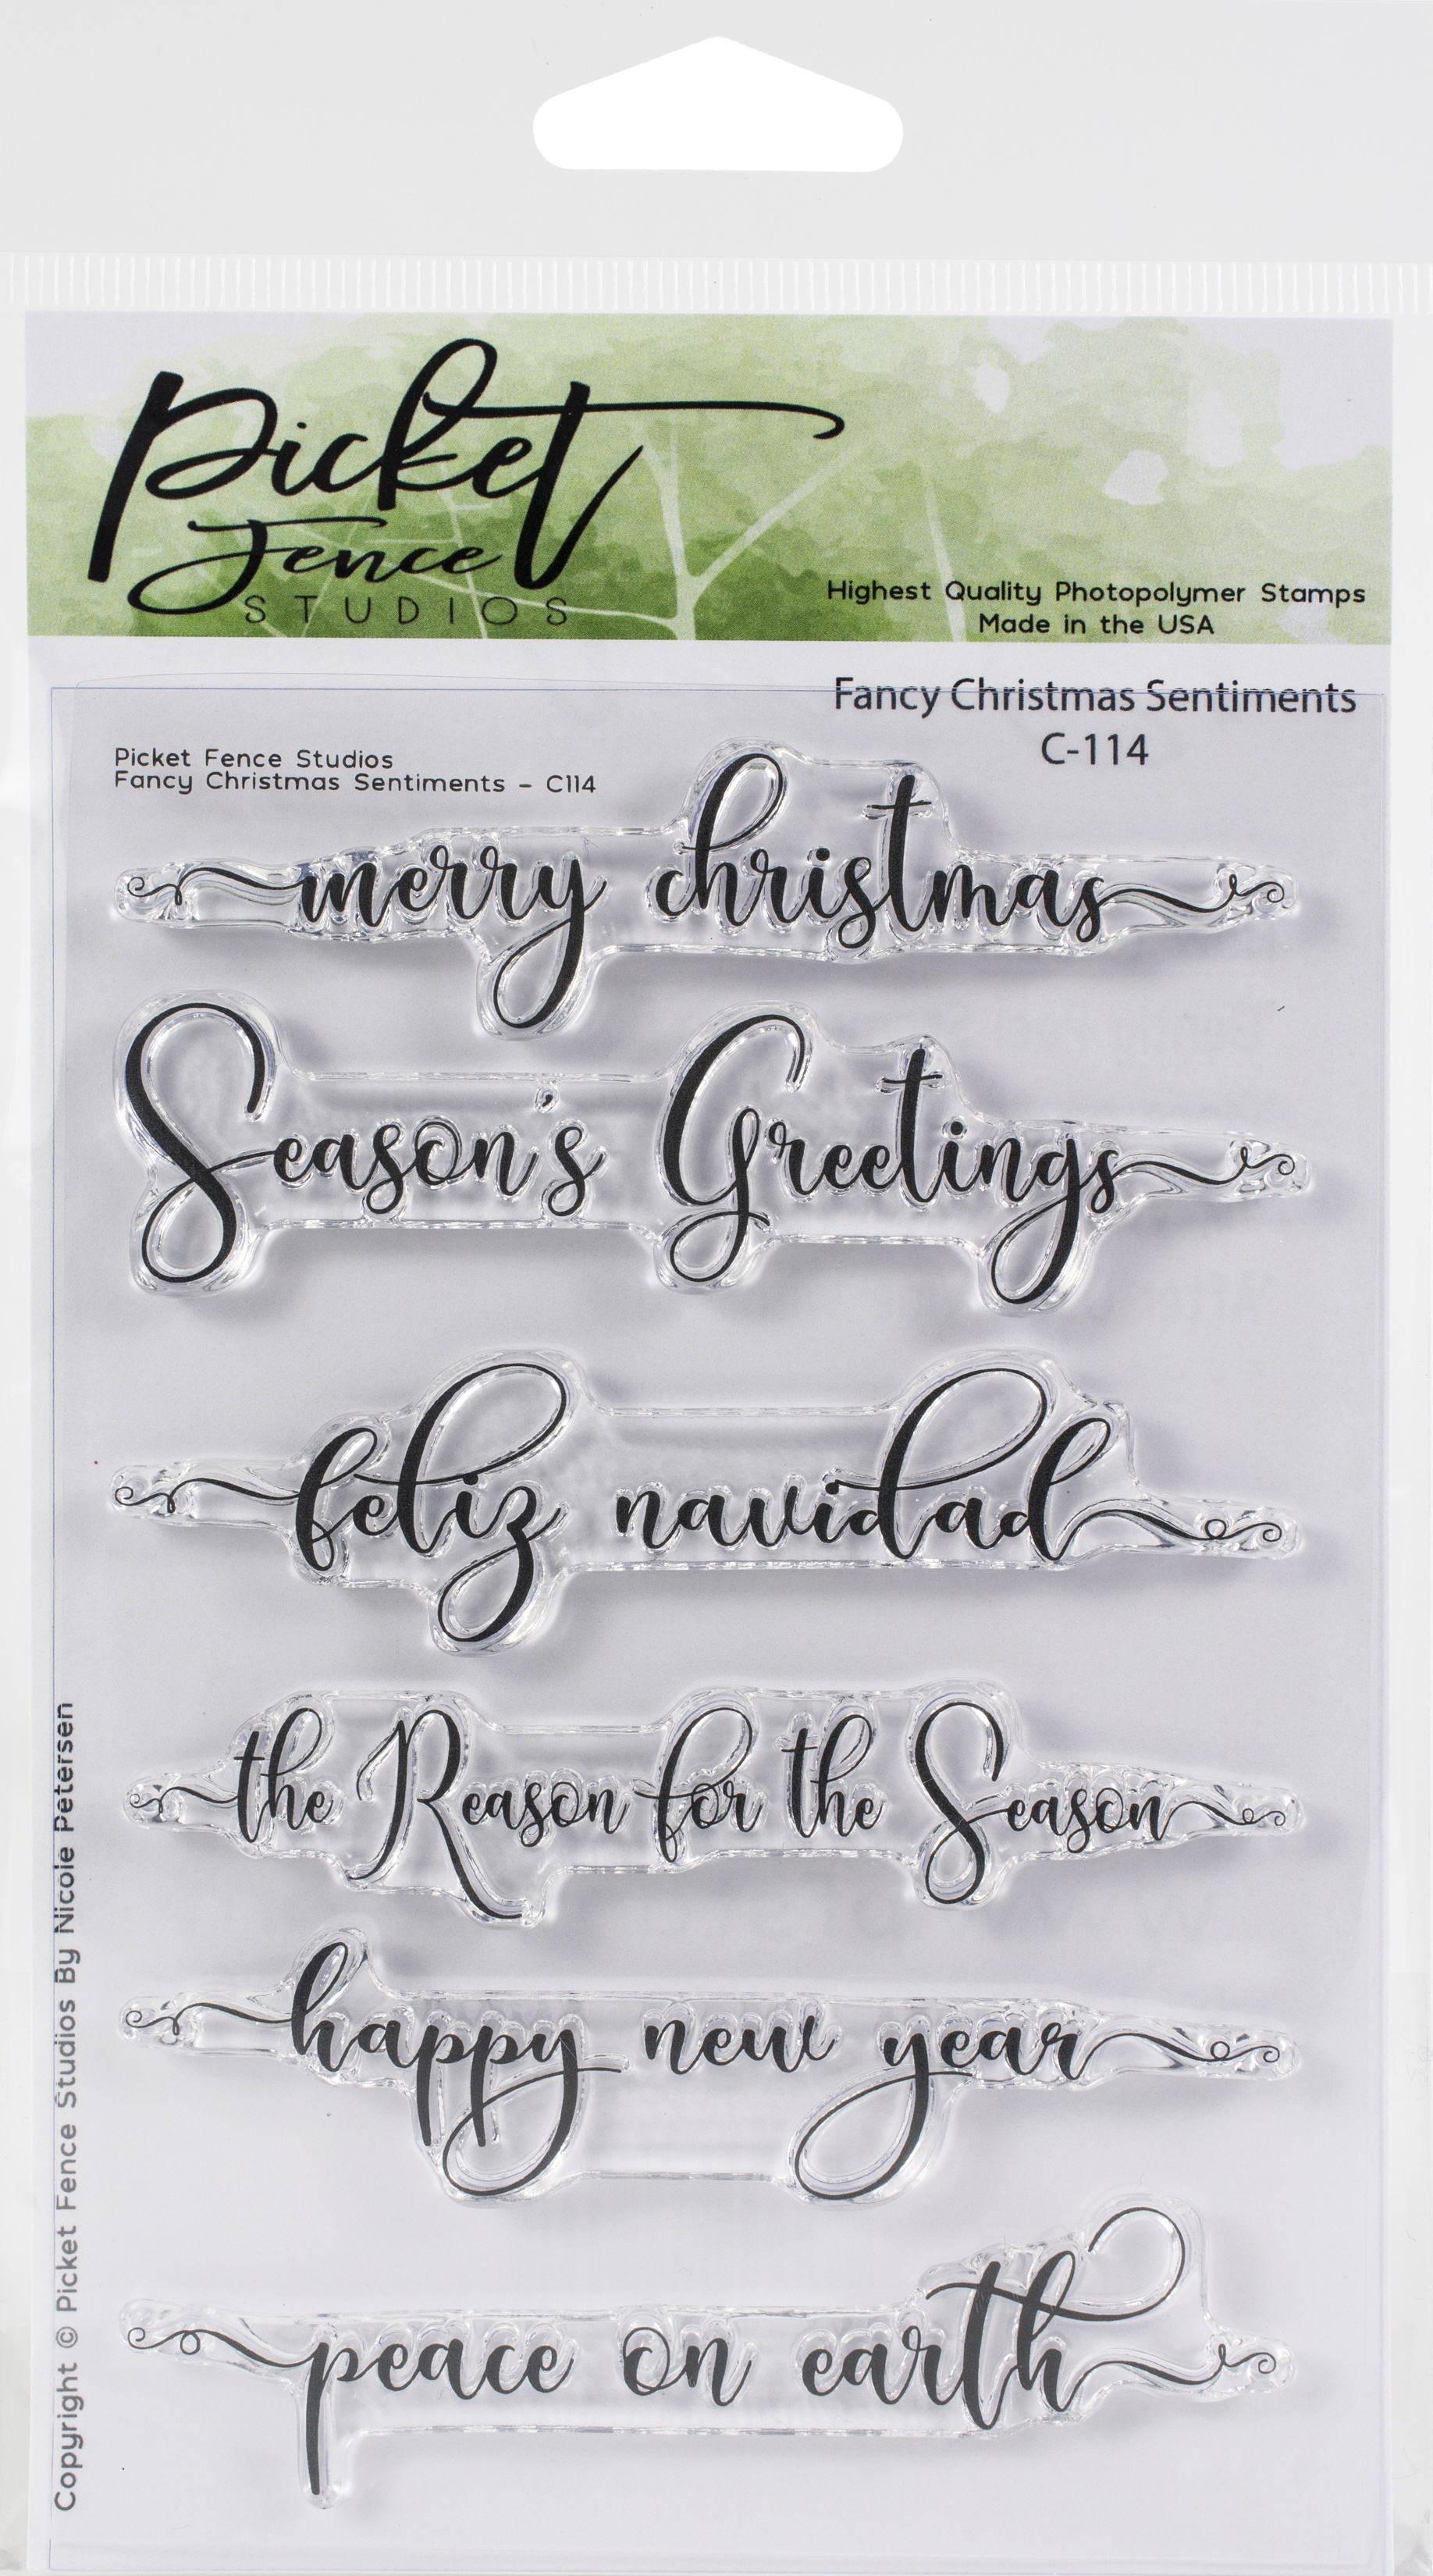 Picket Fence - Fancy Sentiments S-169